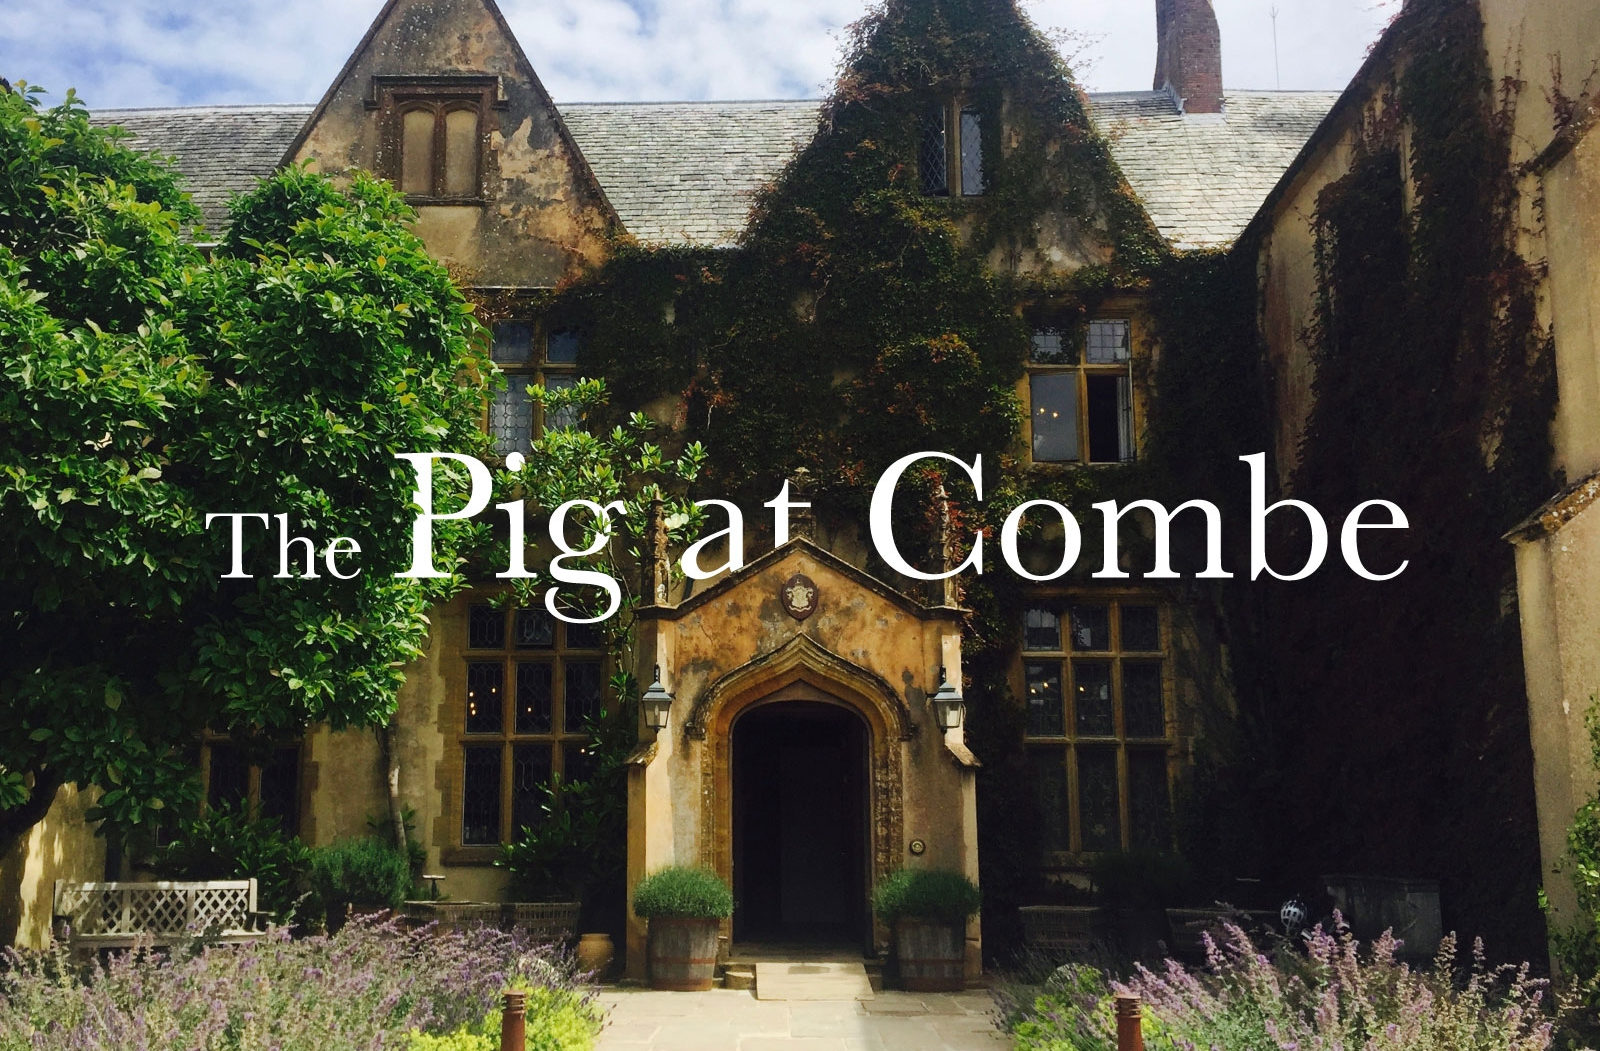 The Pig at Combe - Honington, EnglandNestled in the Arabian horse studded verdant countryside of Devonshire, England, The Pig at Combe is a rural Elizabethan 3,500 acre topaz walled country manor retreat complete with civilized afternoon tea served by manicured butlers in a room replete with velvet sofas, a roaring fire, gilt mirrors, and a 19th century oil painting of the manor that looks as if it jumped from the pages of Emily Brontës Wuthering Heights.With all the the amenities and exceedingly more charm than most five star hotels, this country estate surrounded by picture perfect English countryside makes the 1.5 hour train journey from London the perfect urbanite escape.